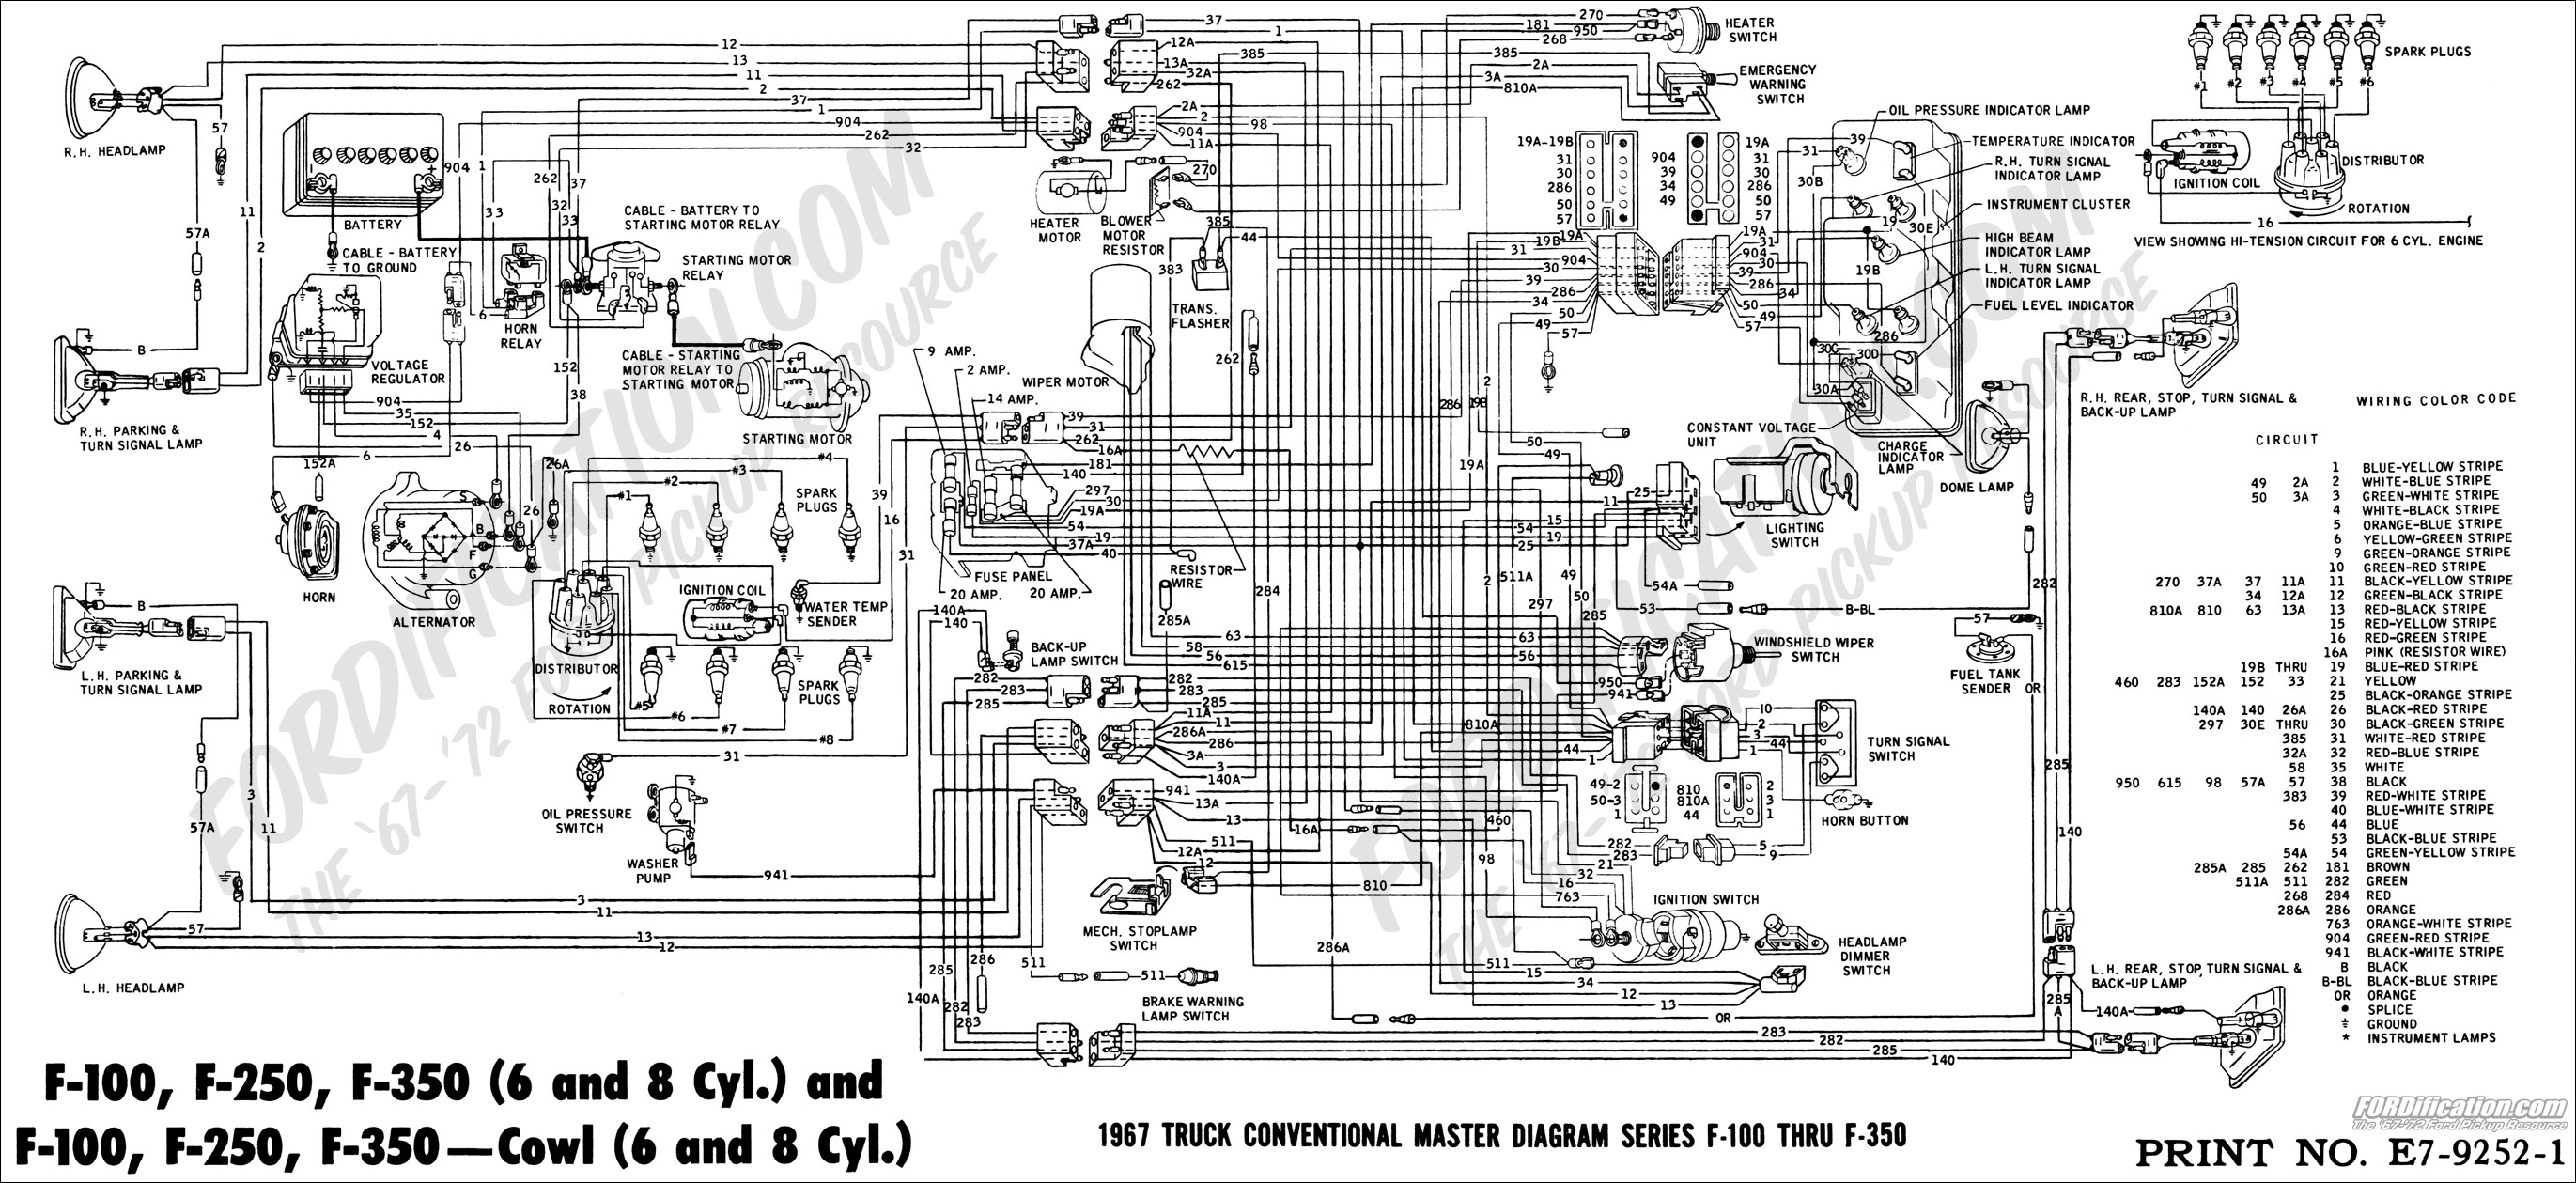 67masterdiagram 1999 ford radio wiring diagram turcolea com 1999 ford f350 radio wiring diagram at reclaimingppi.co